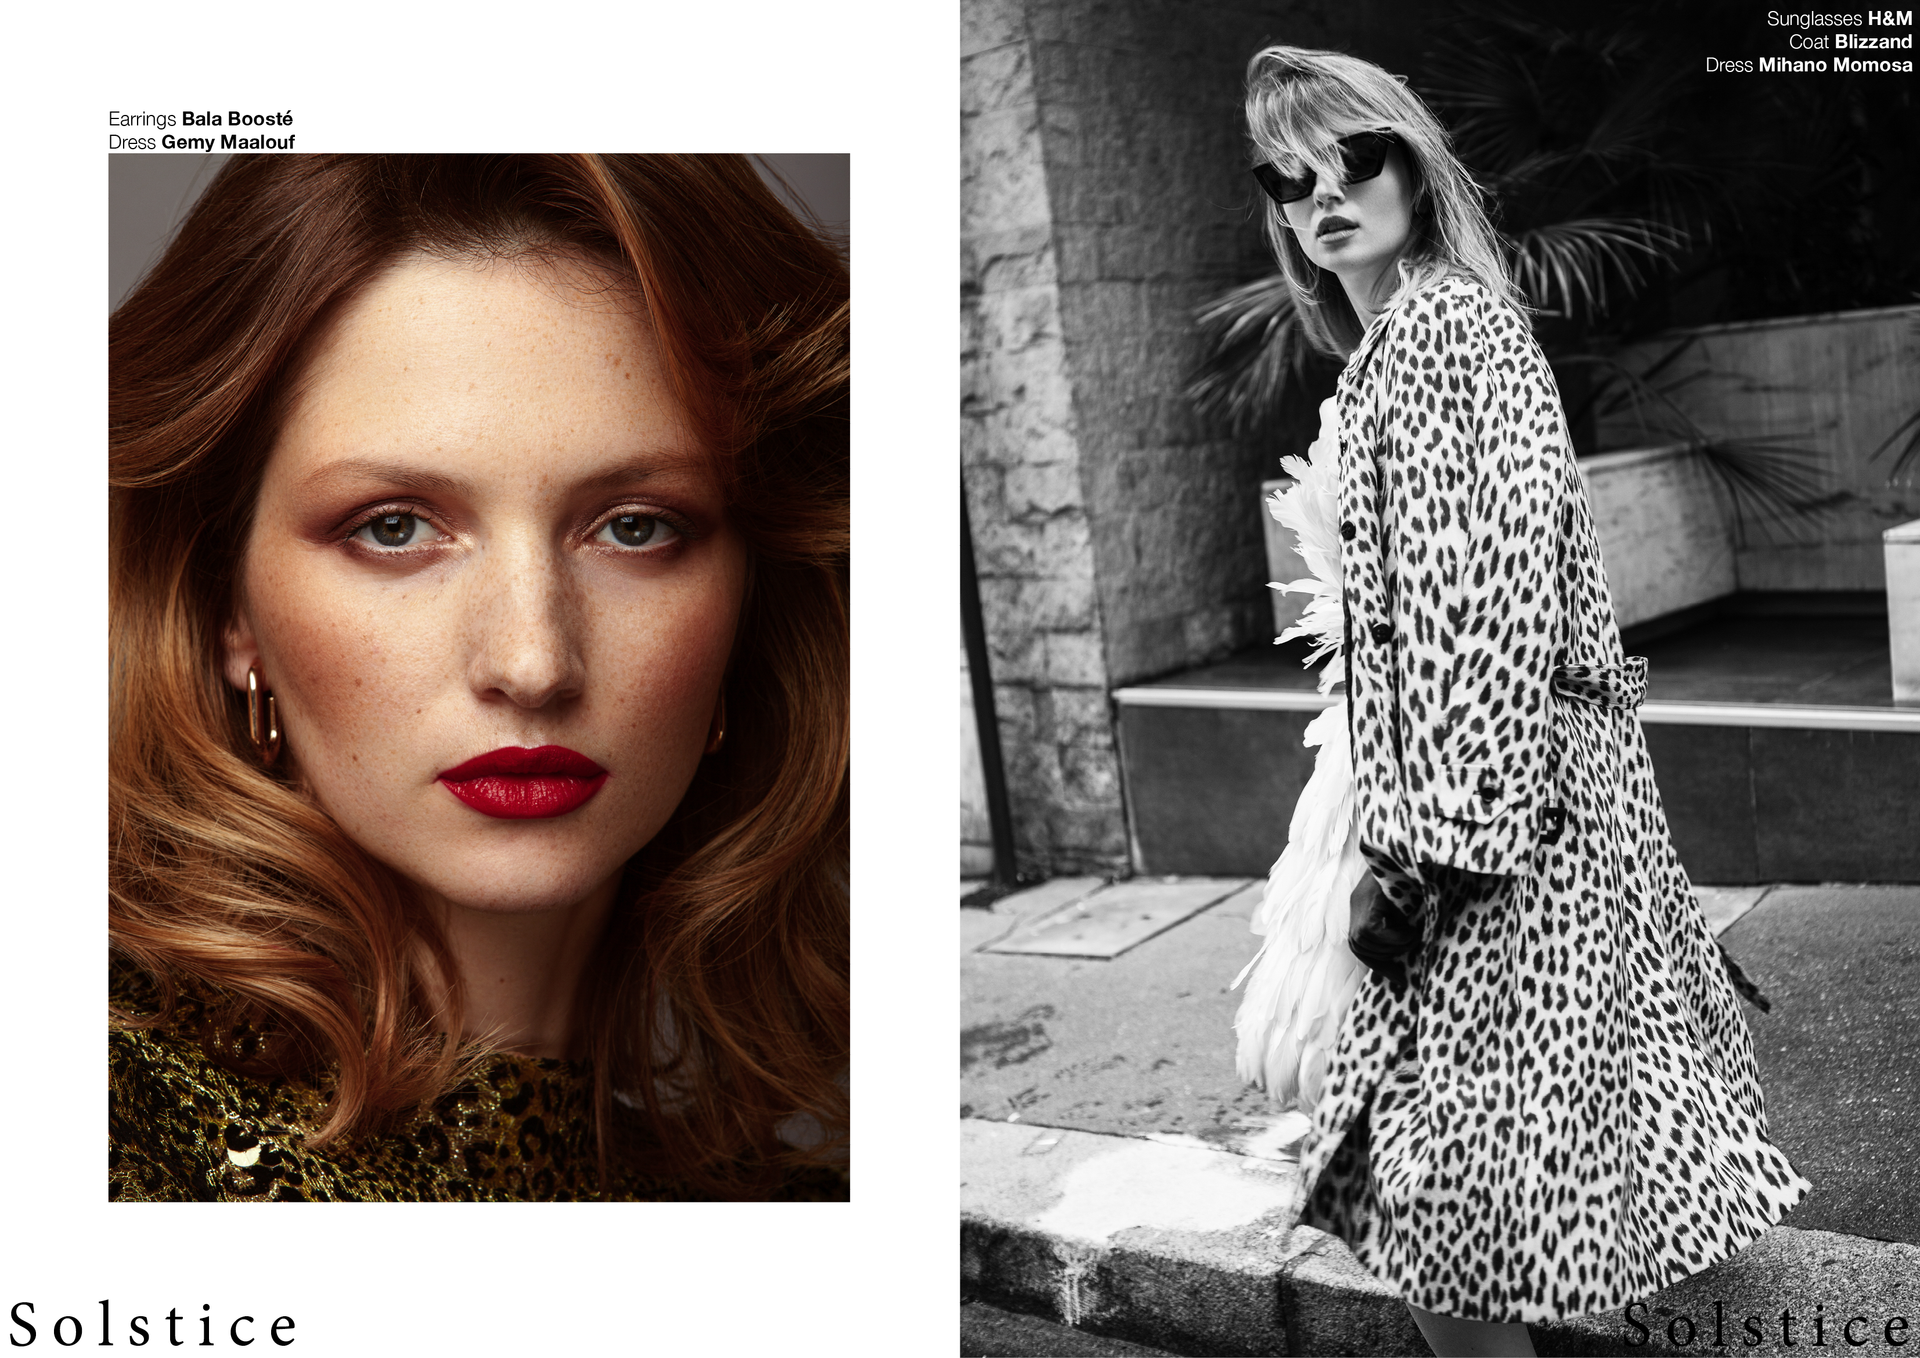 Gregory Boussac Webitorial6.png